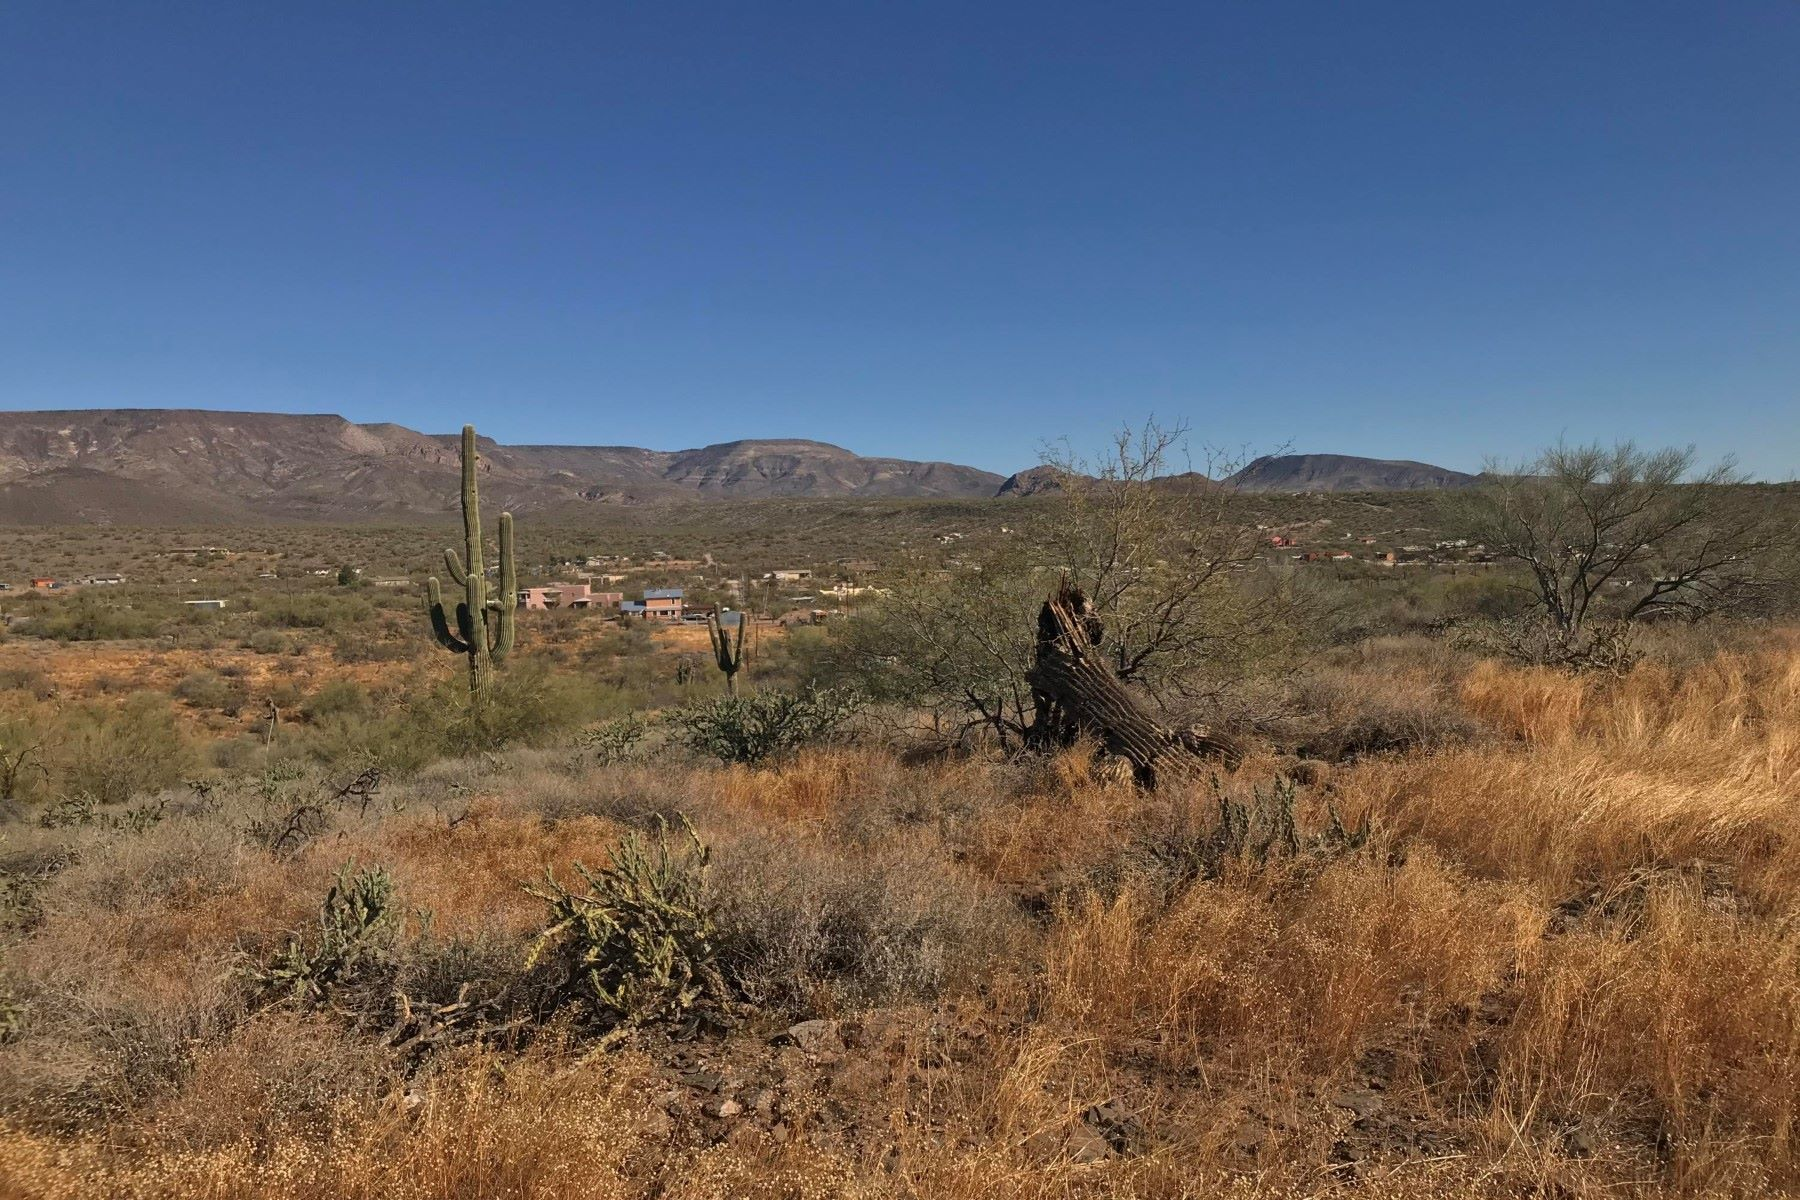 Land for Sale at Great Priced to Sell Lot 0 N 11TH AVE New River, Arizona 85087 United States